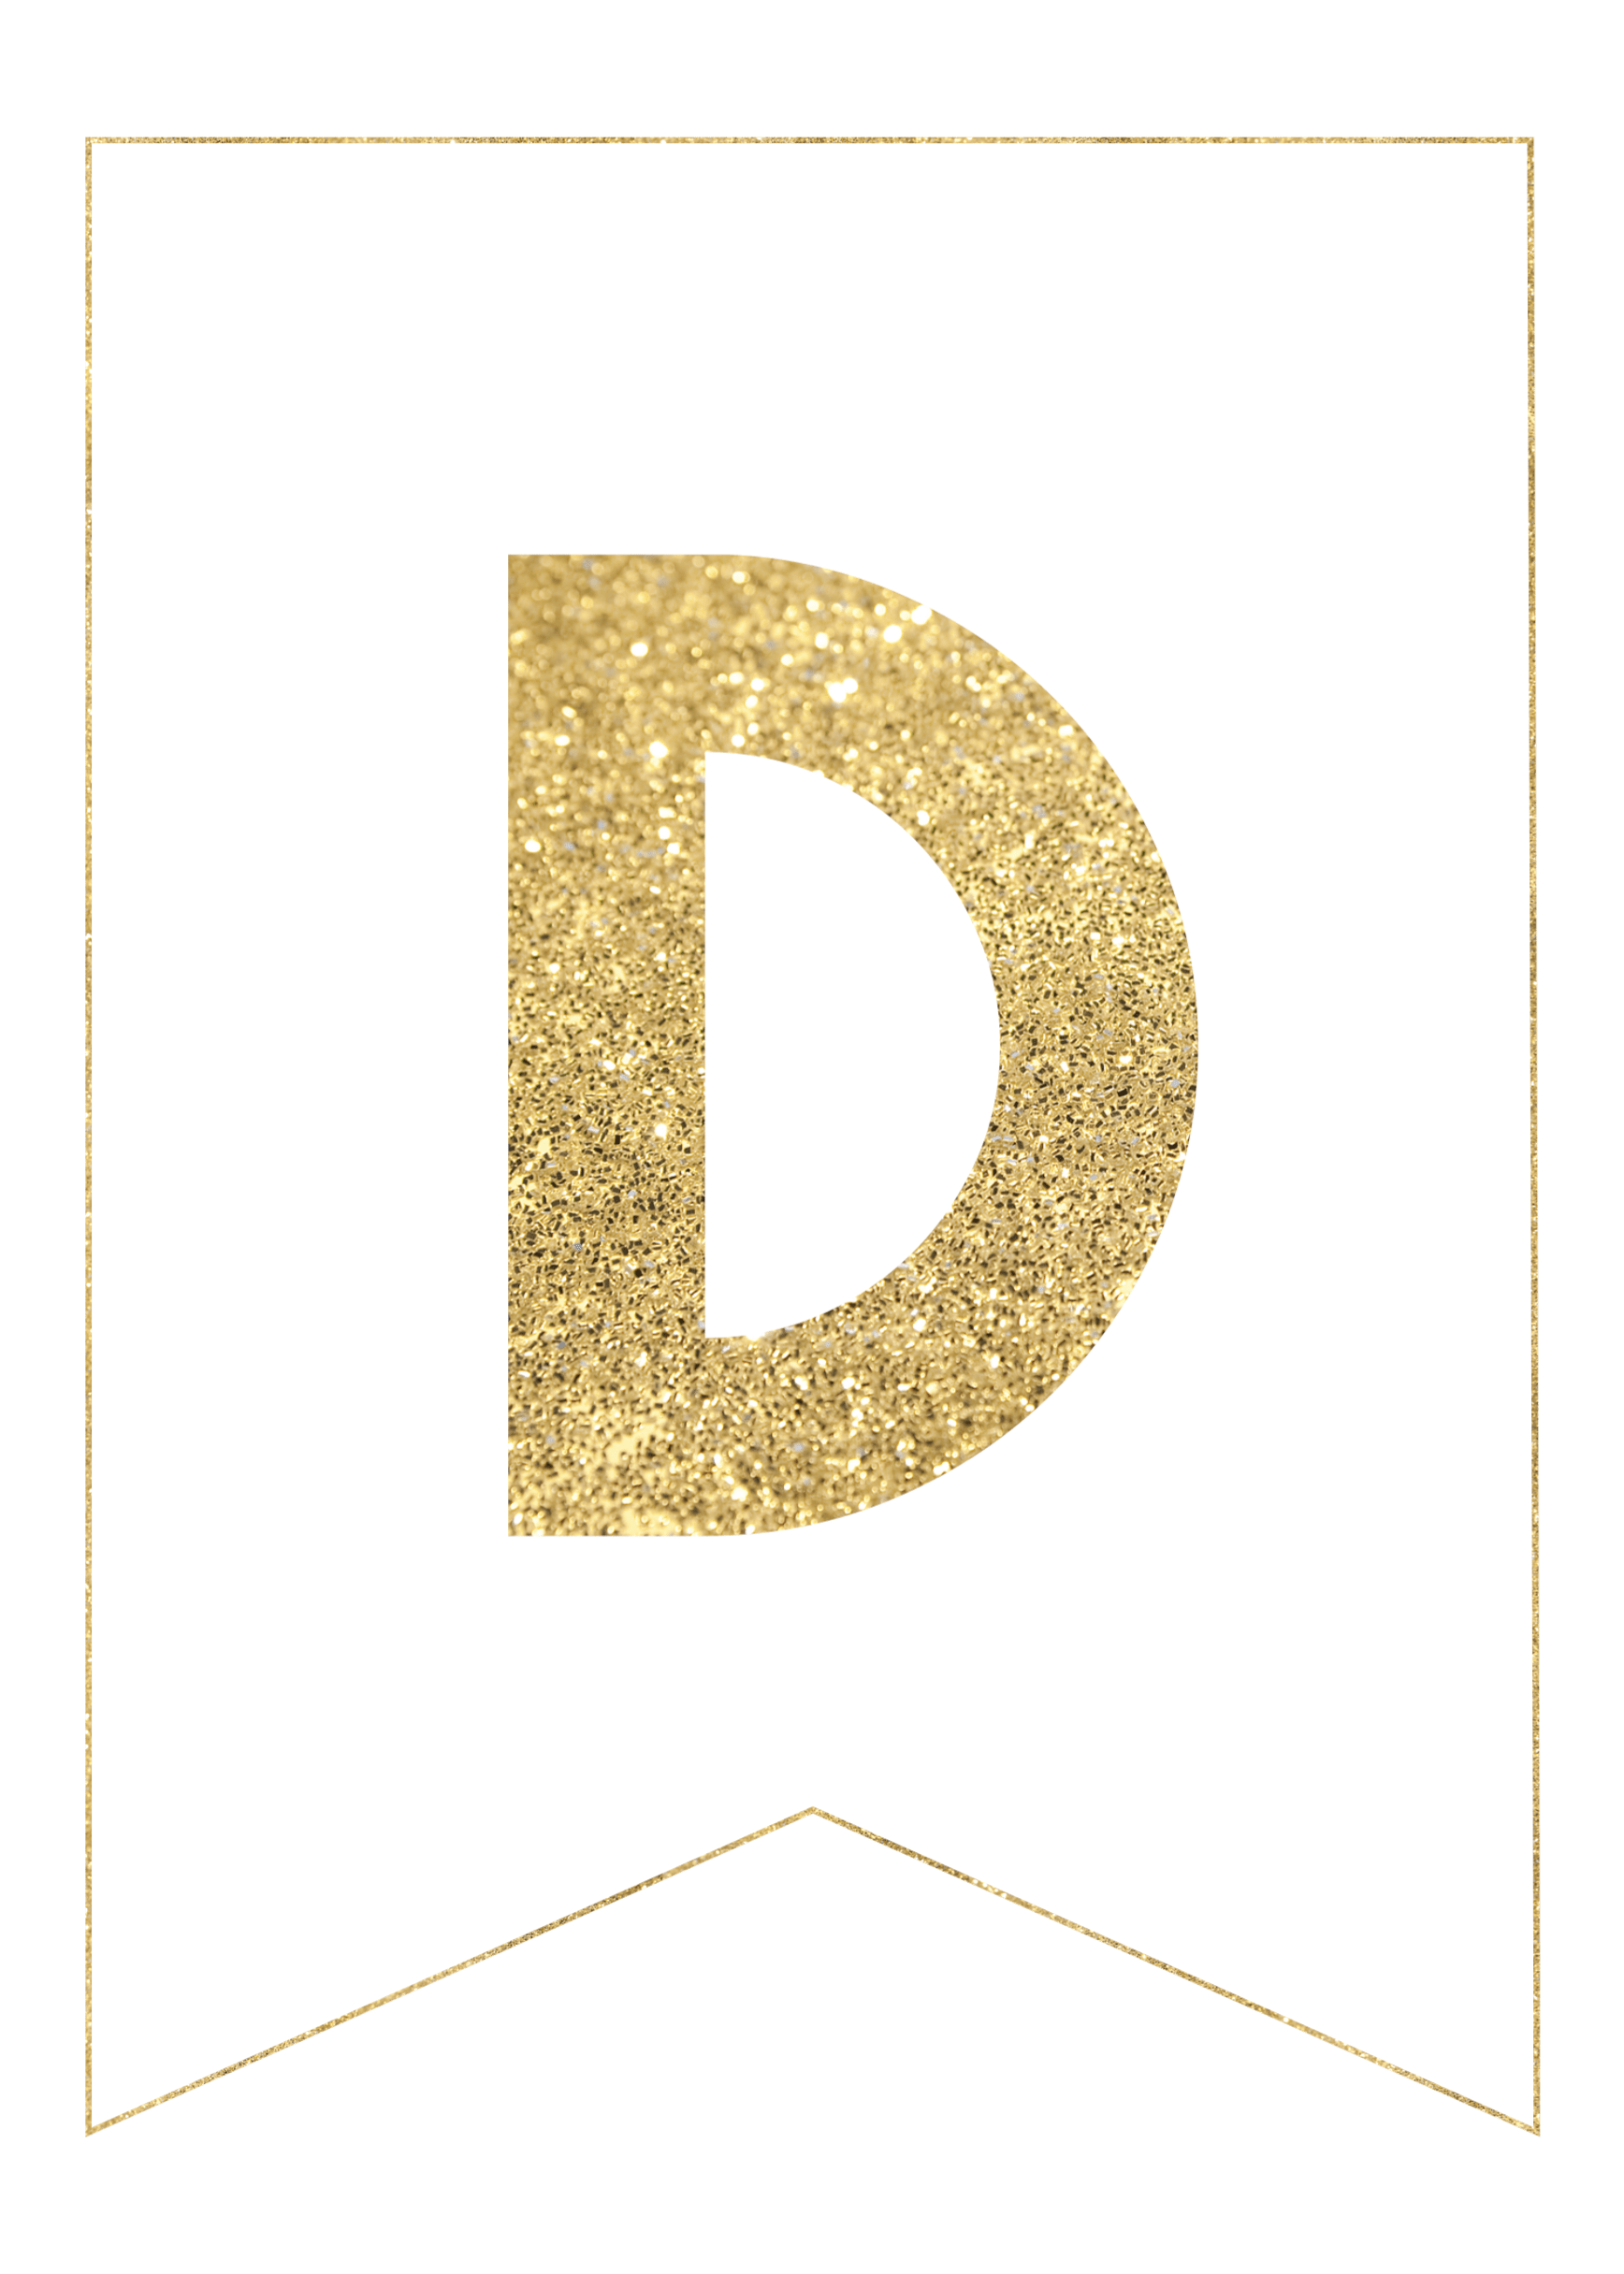 photo regarding Free Printable Alphabet Letters for Banners titled Gold Free of charge Printable Banner Letters - Paper Path Layout